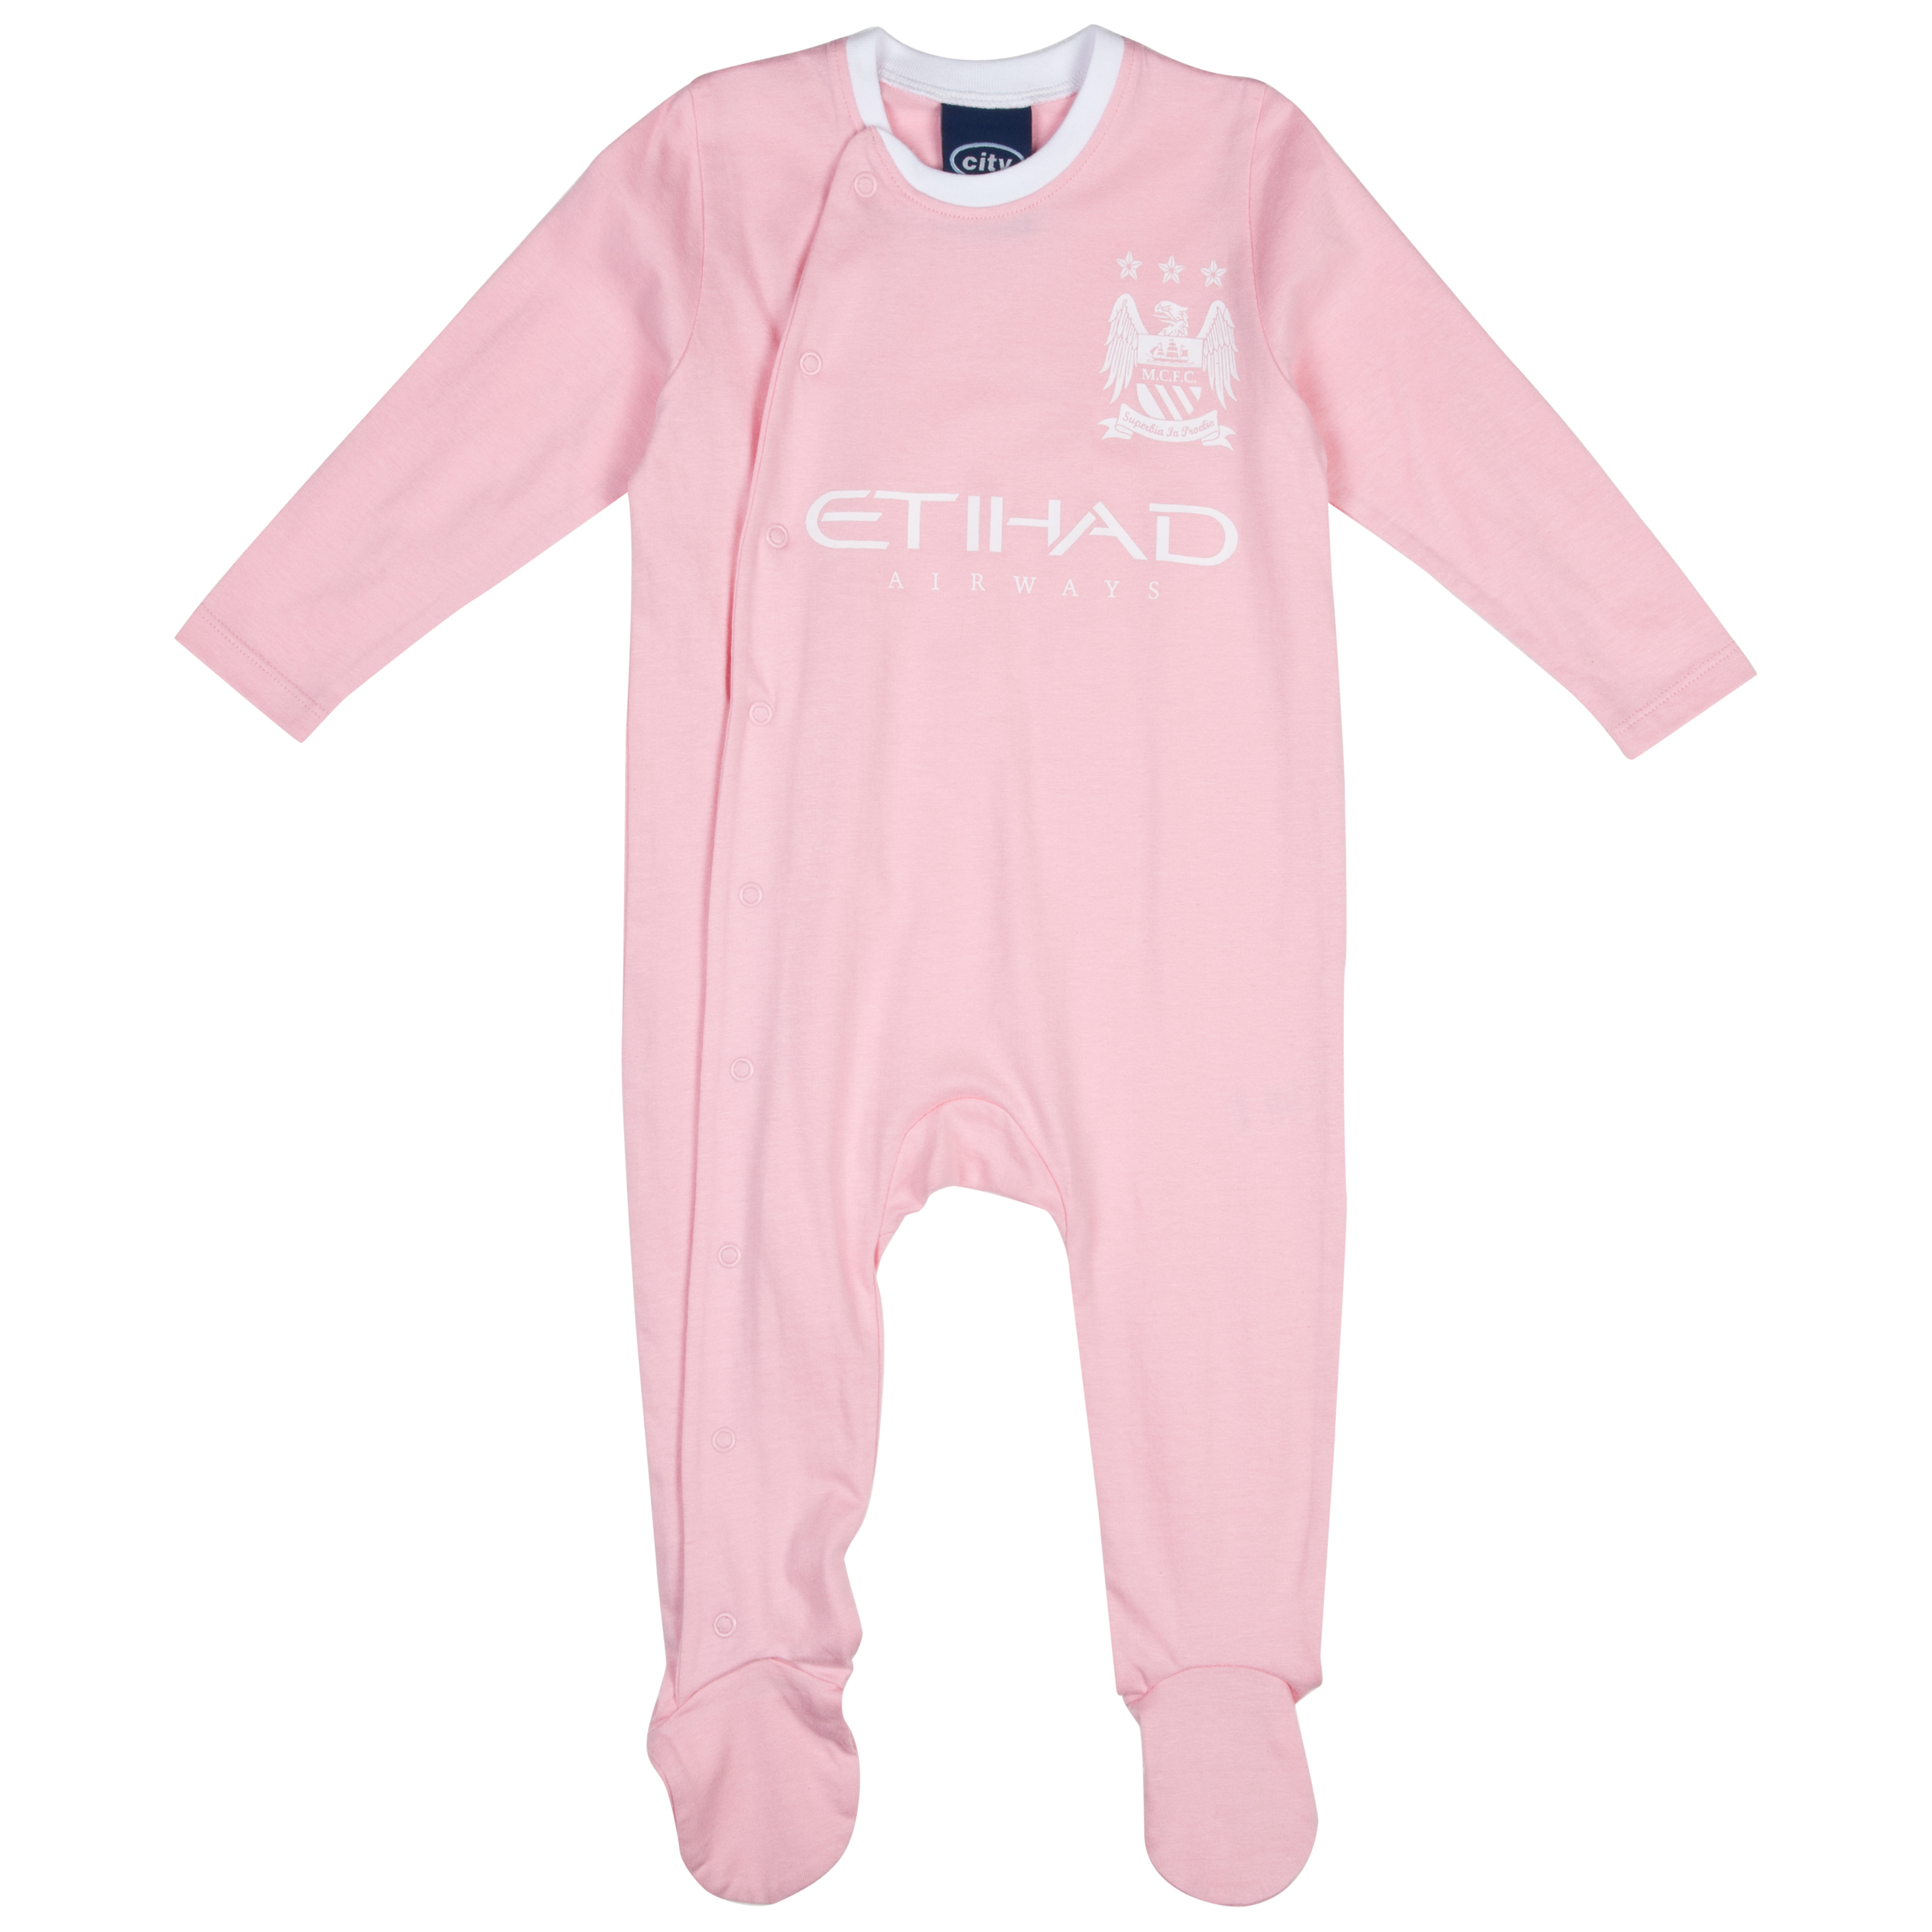 Manchester City 12/13 Kit Sleepsuit - Pink/White - Baby